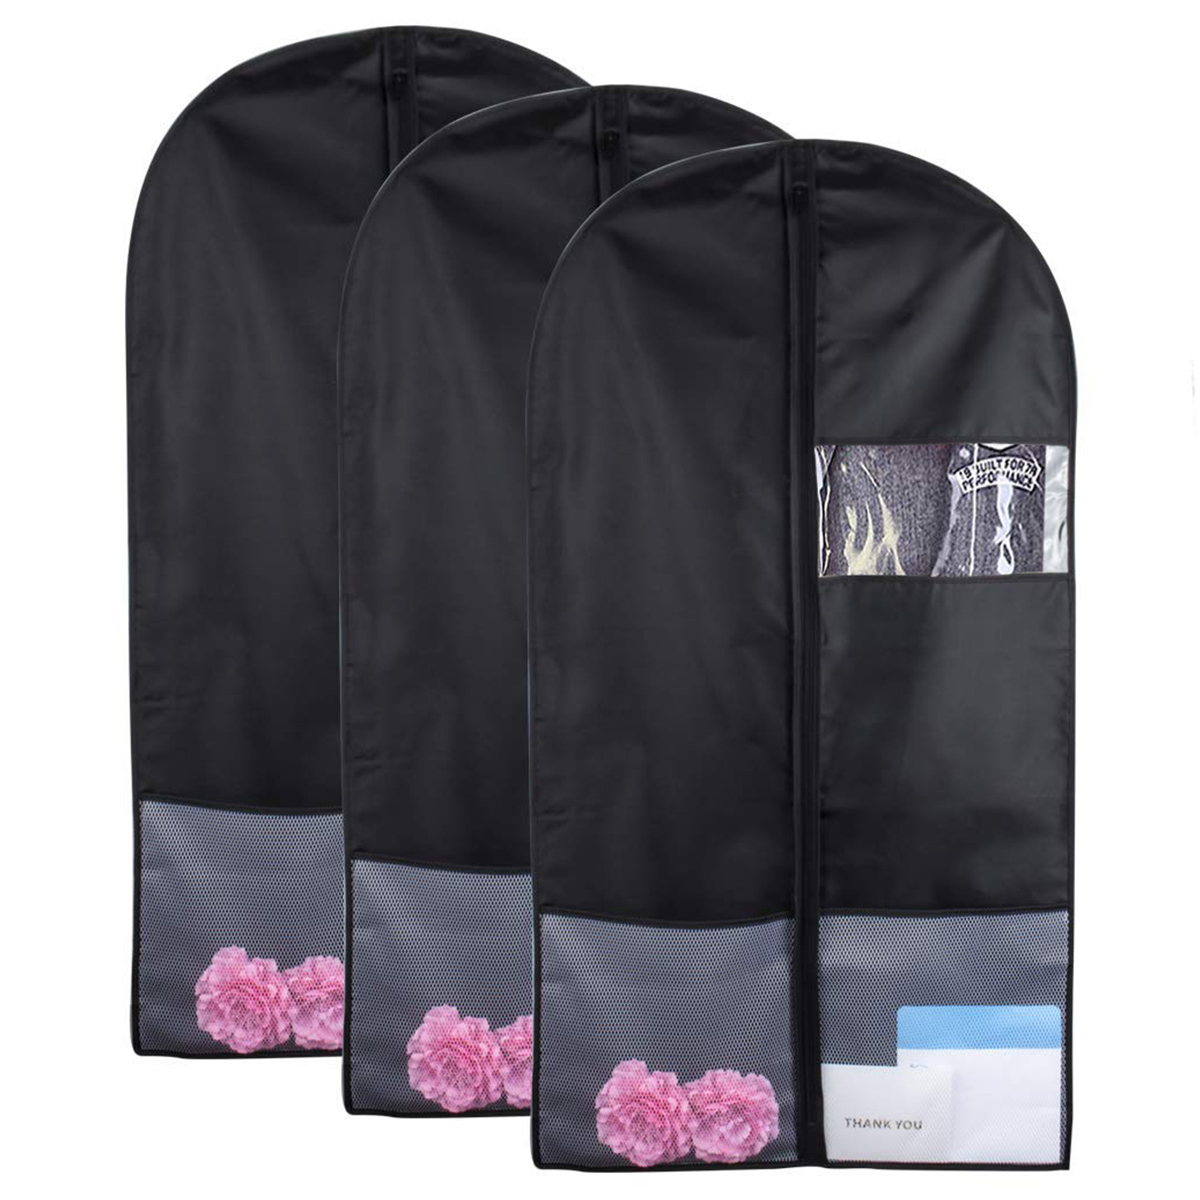 Us 12 86 16 Off Garment Bag With Pockets 43 Inch Bags For Storage Dance Suit Clear Window Set Of 3 In Clothing